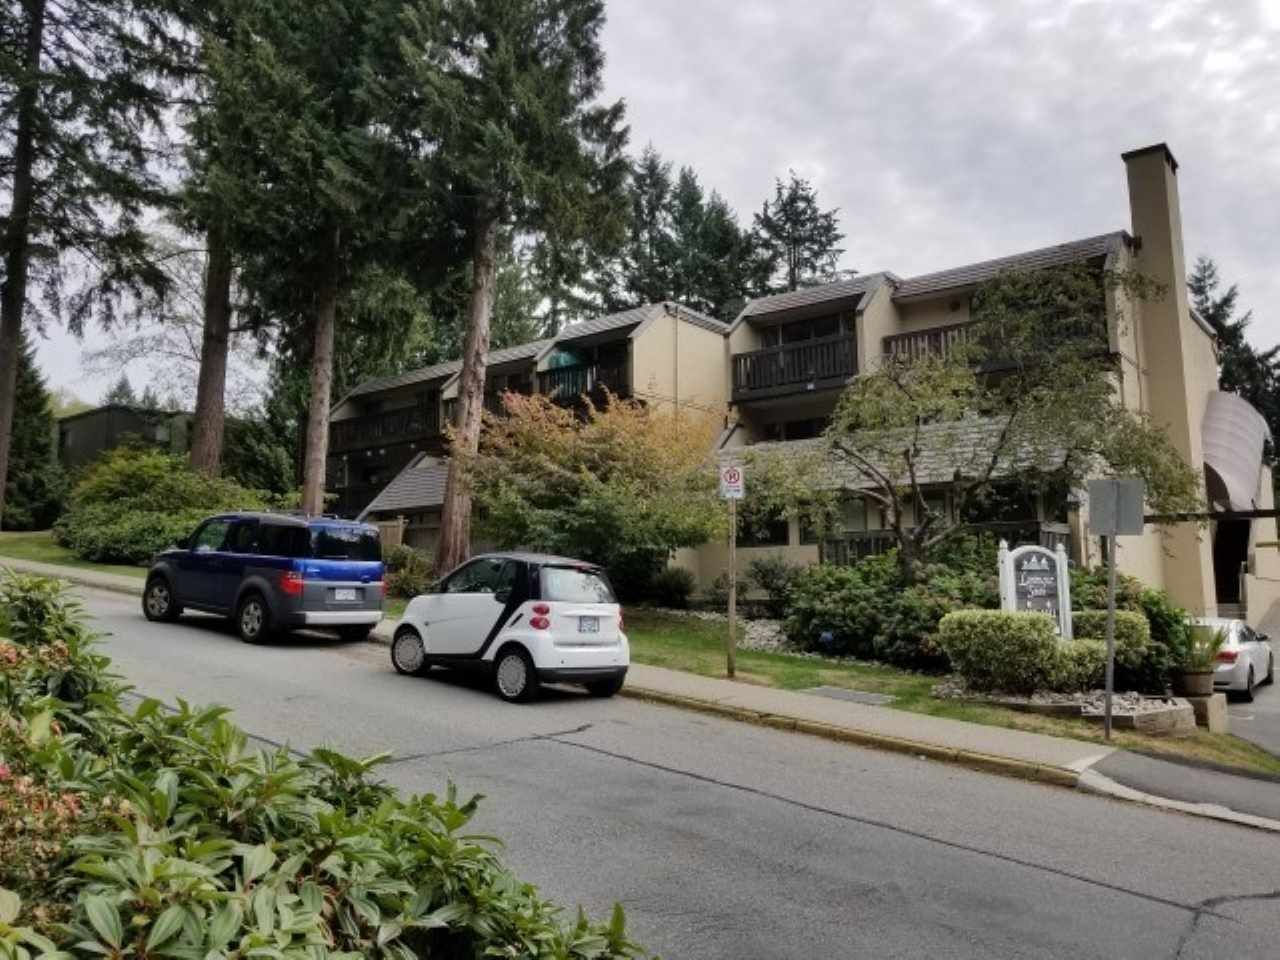 """Main Photo: 54 1825 PURCELL Way in North Vancouver: Lynnmour Condo for sale in """"LYNNMOUR SOUTH"""" : MLS®# R2569796"""